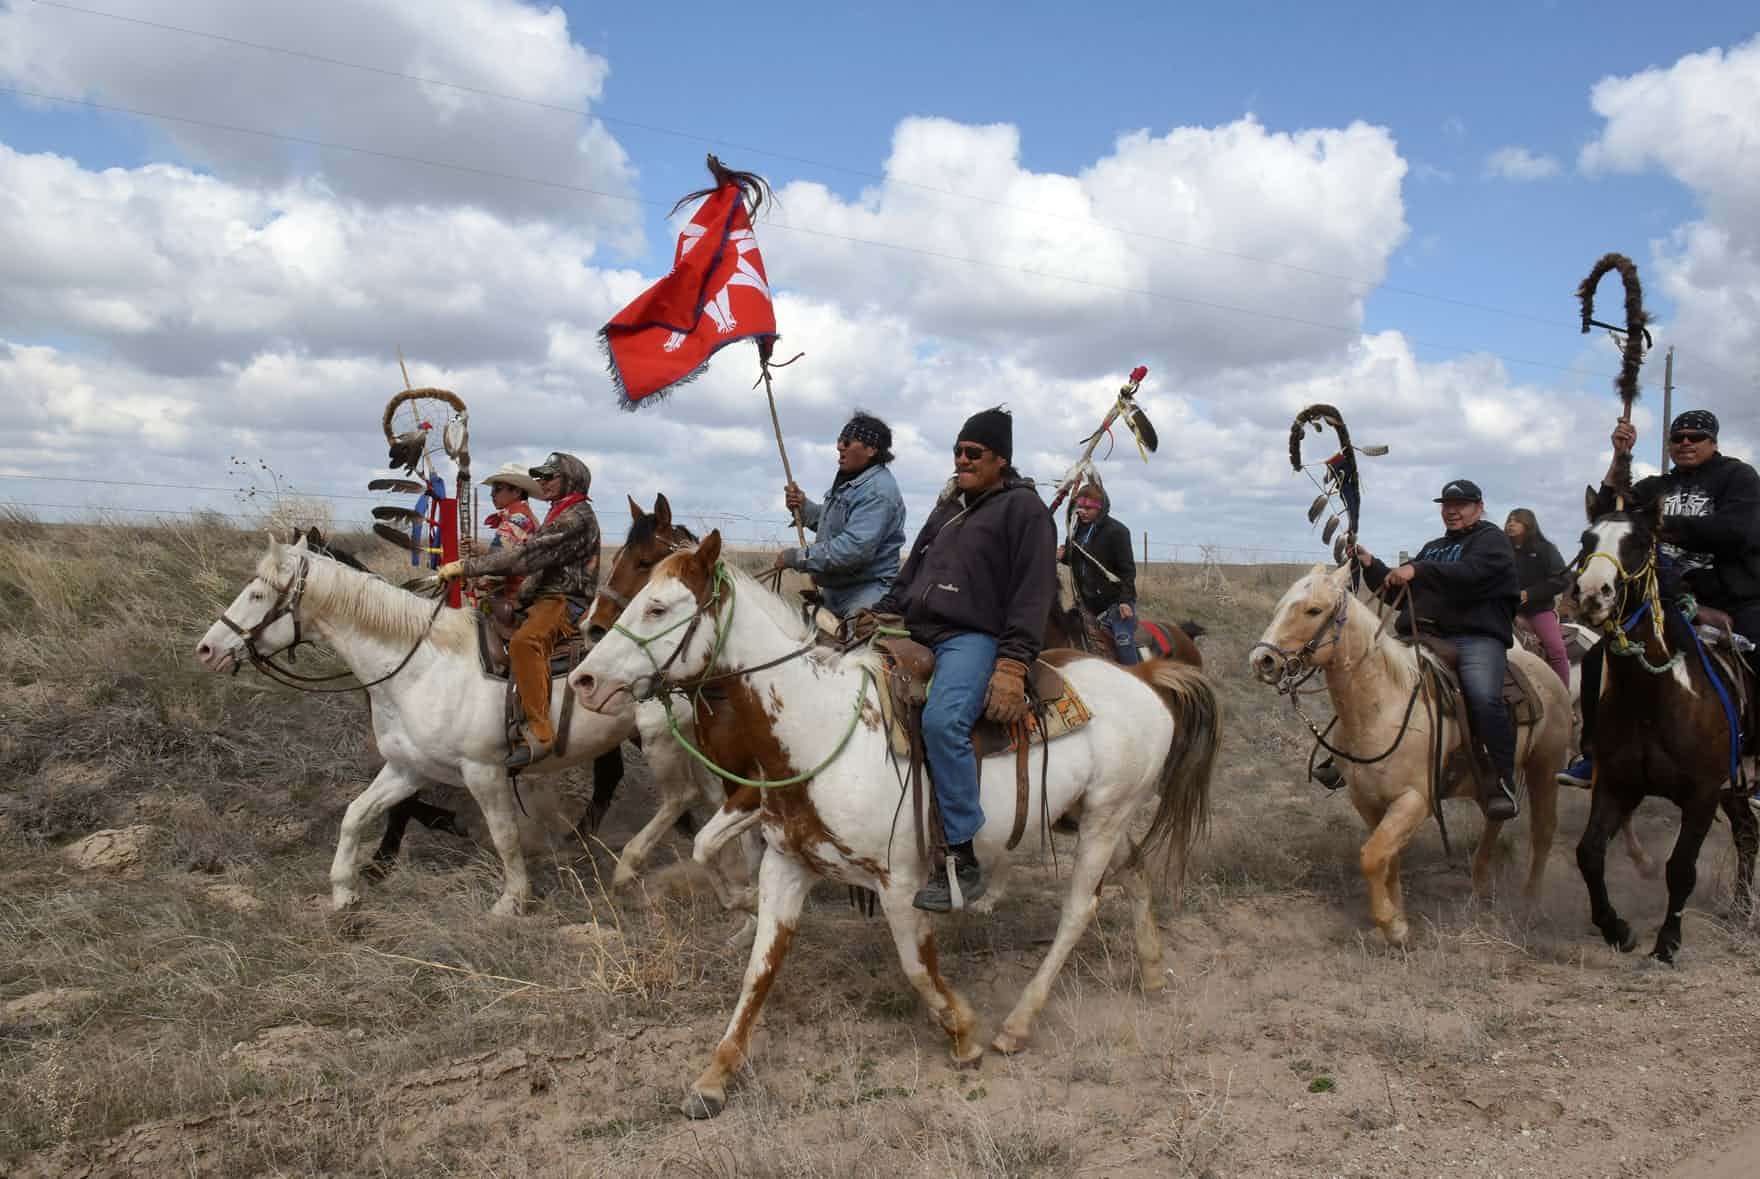 Roderick Dupris of the Cheyenne River reservation and other Fort Laramie treaty riders in Torrington, Wyoming Credit:Stephanie Keith/Reuters